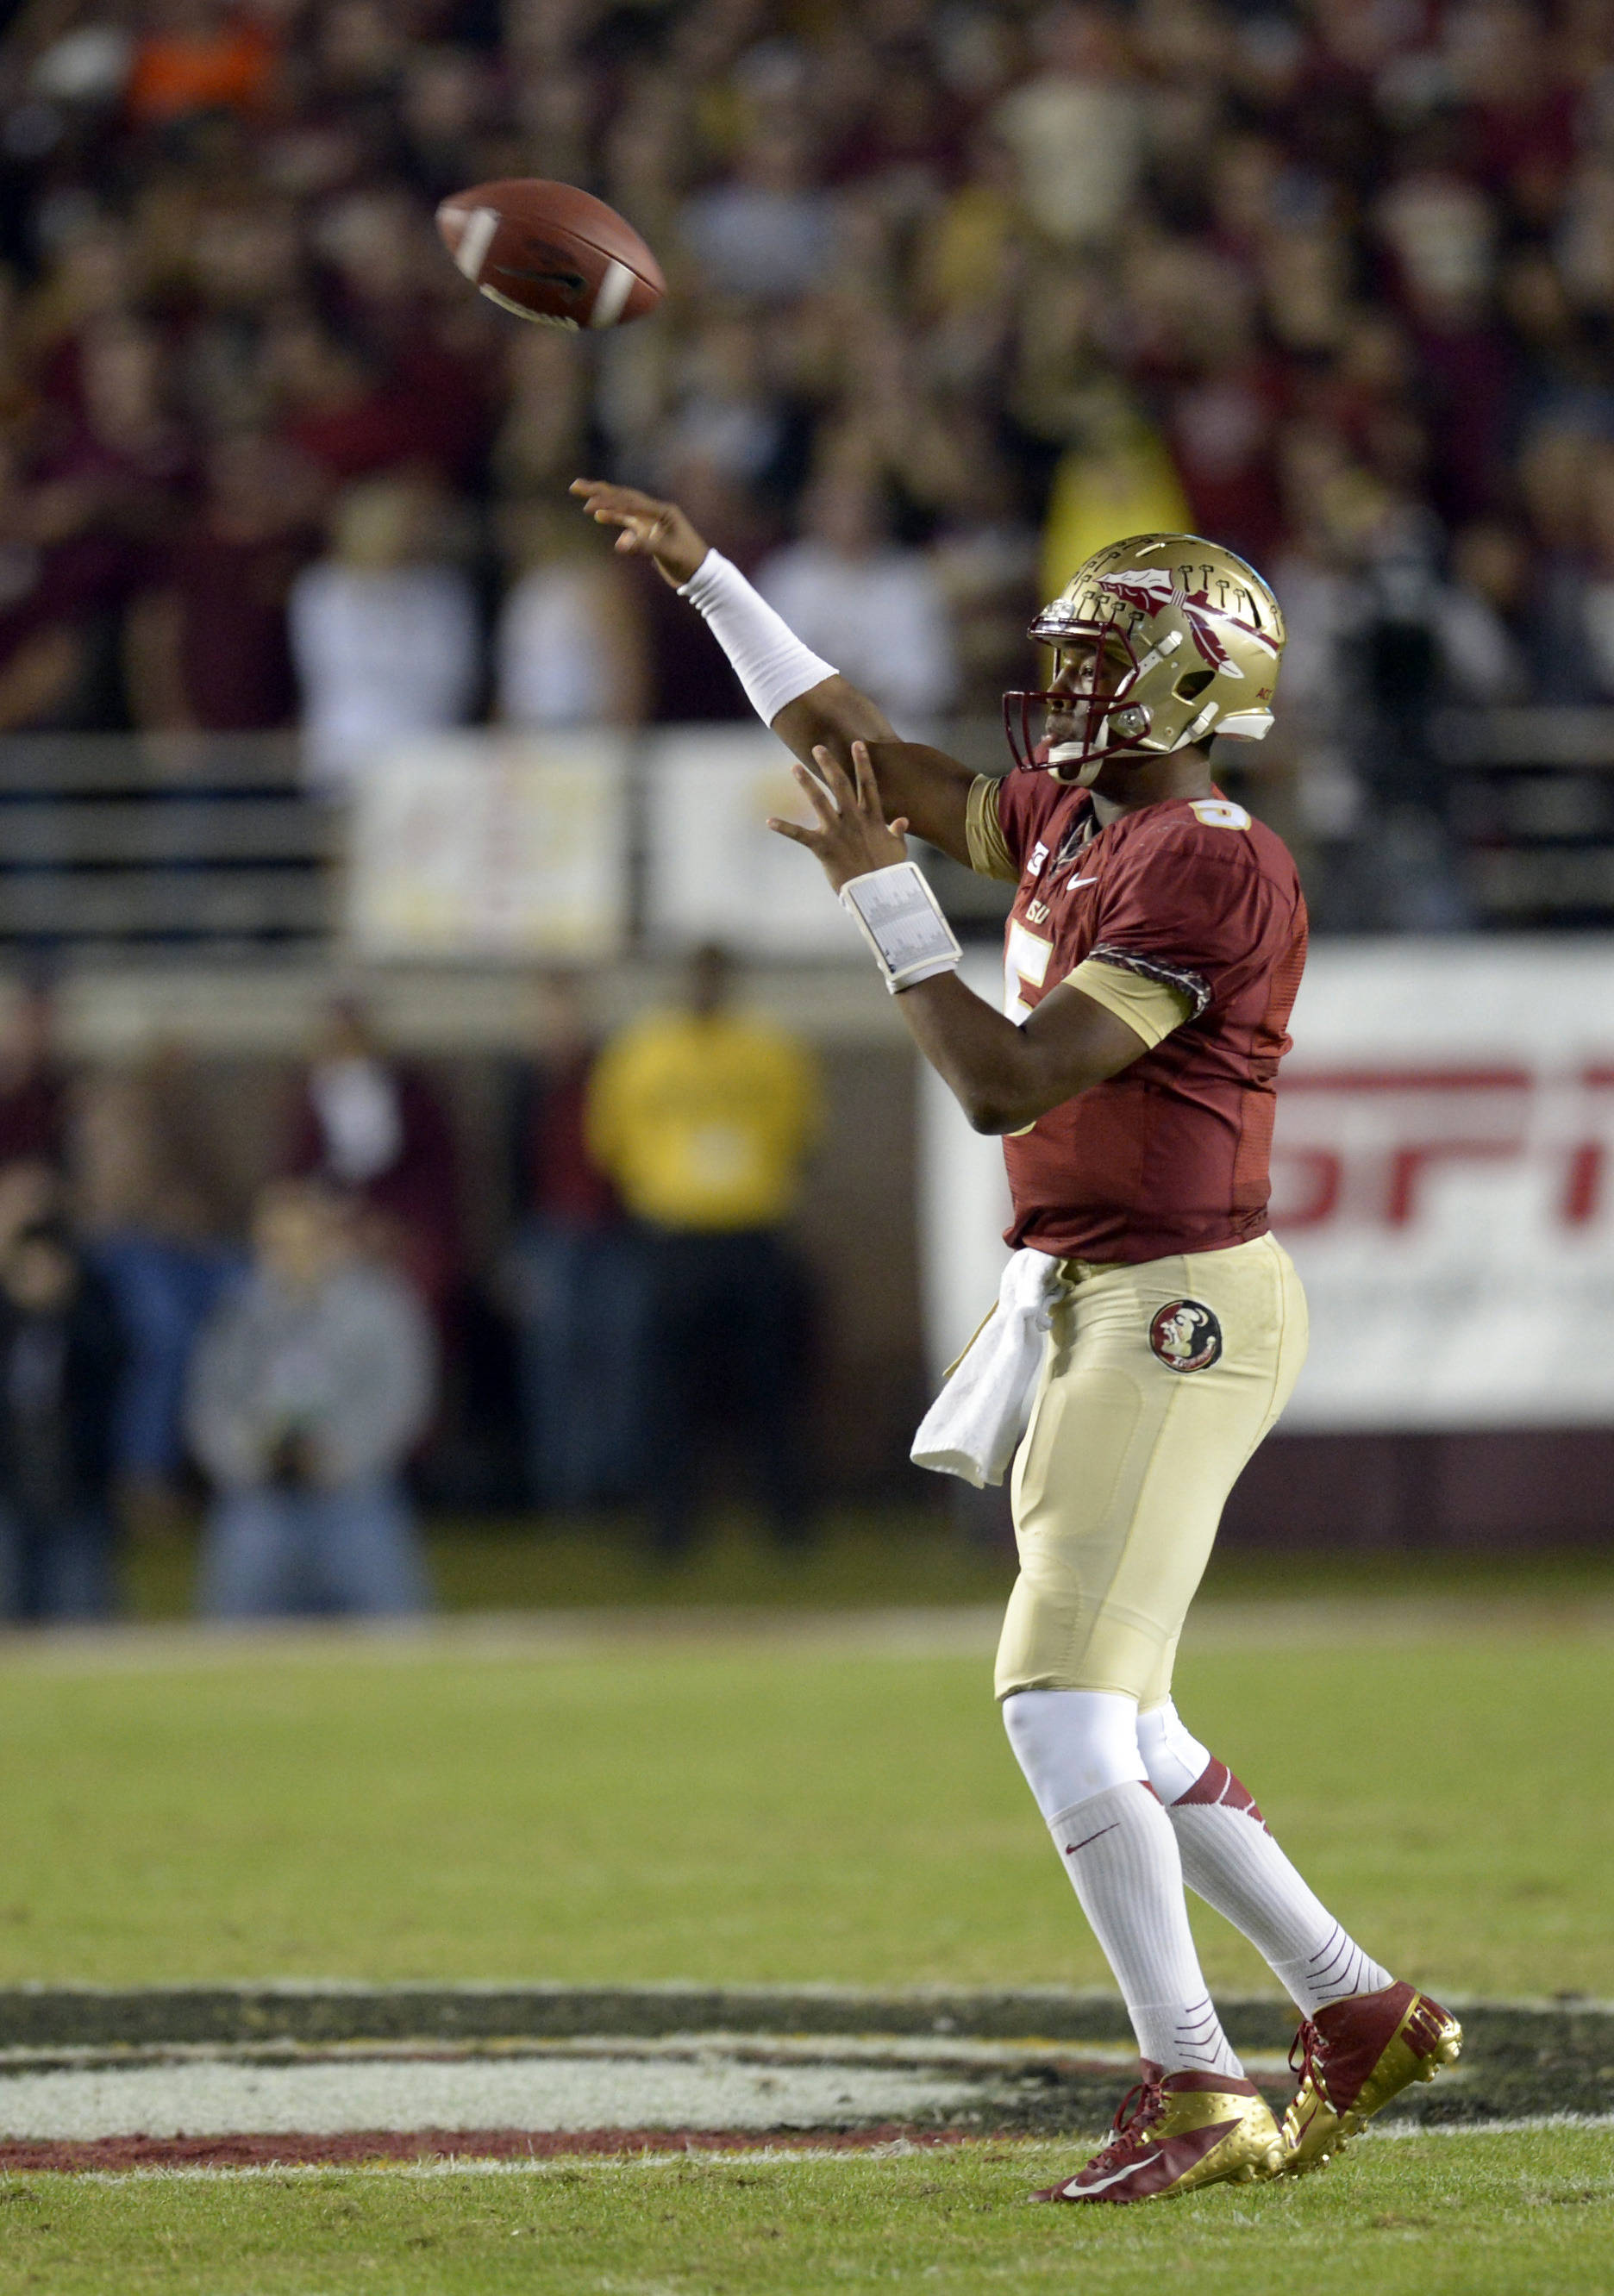 Florida State Seminoles quarterback Jameis Winston (5) passes against the Miami Hurricanes during the first quarter at Doak Campbell Stadium. Mandatory Credit: John David Mercer-USA TODAY Sports